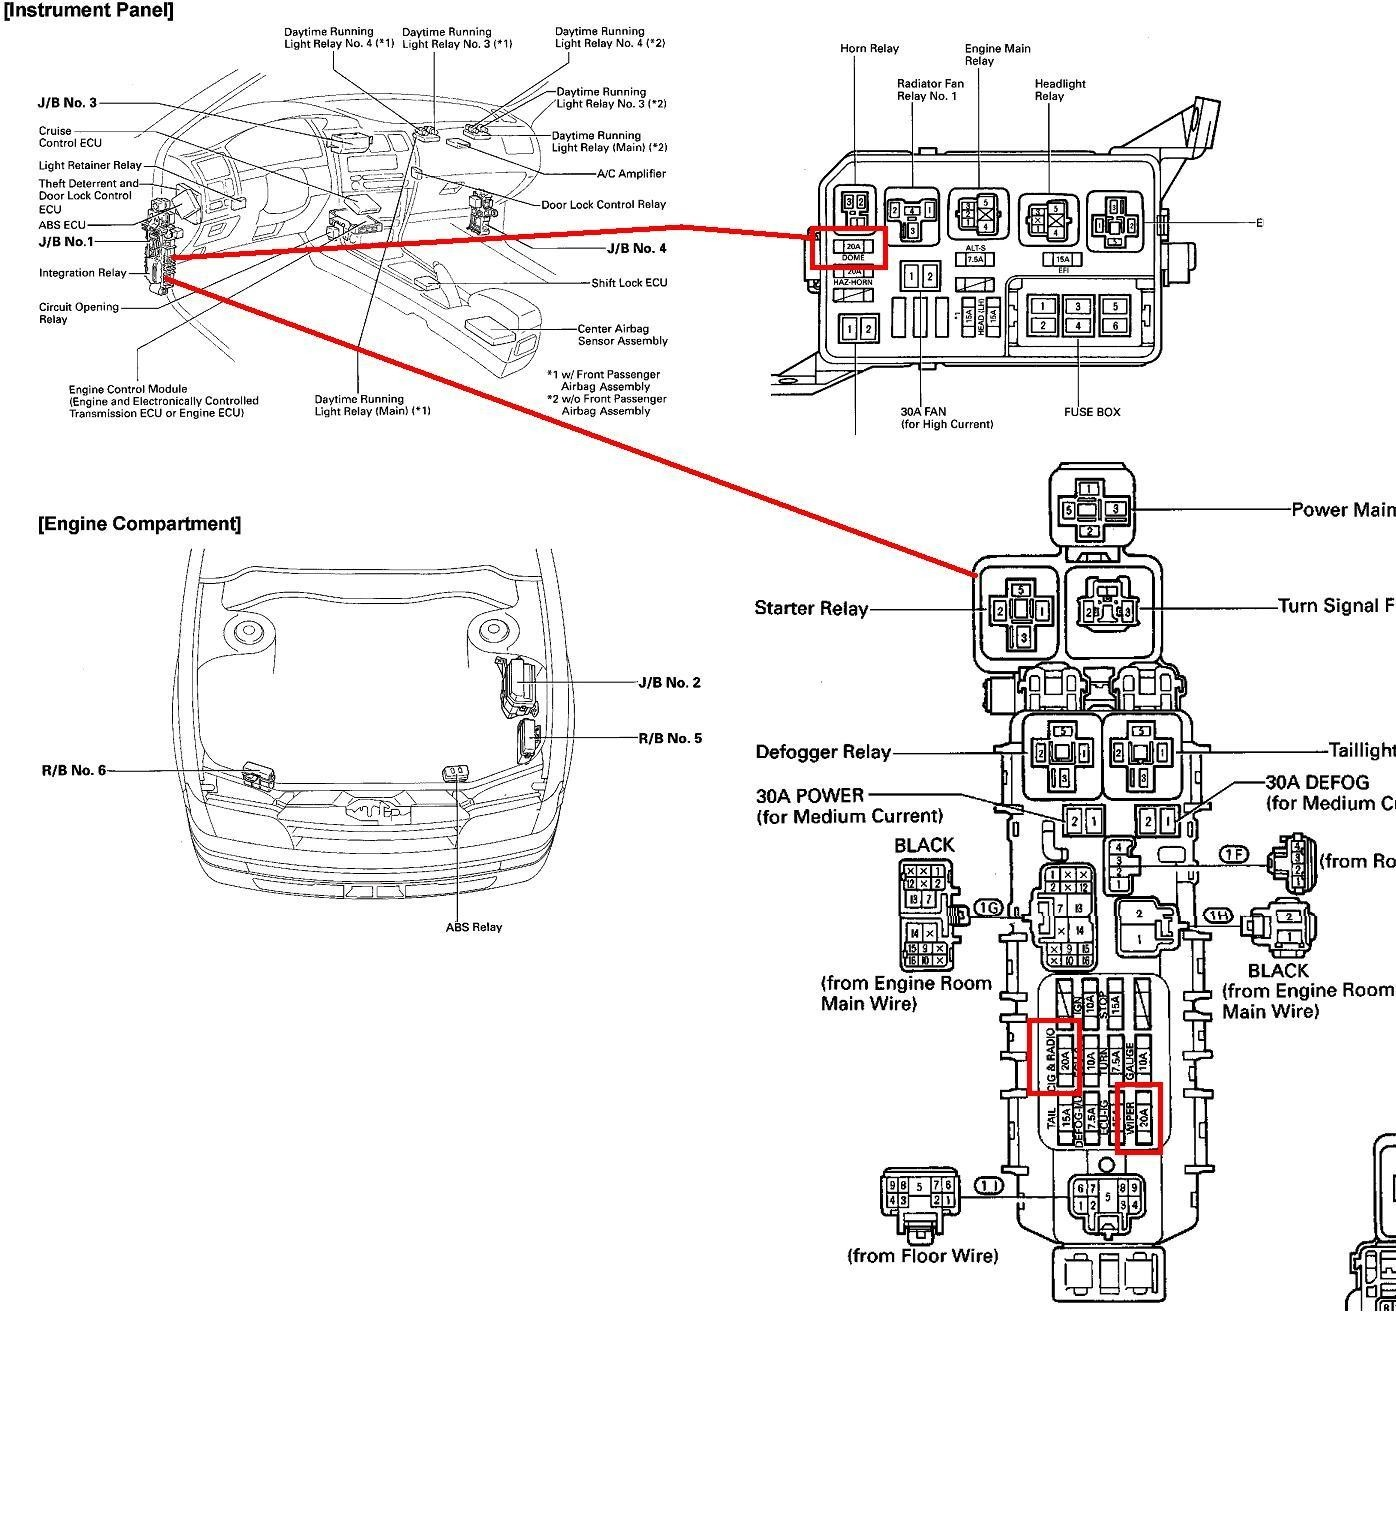 Vvt I Engine Wiring Diagram Great Design Of Toyota 3 Matrix What Places Can Block Heater Install In Rh Detoxicrecenze Com V6 Rebuilt Dual